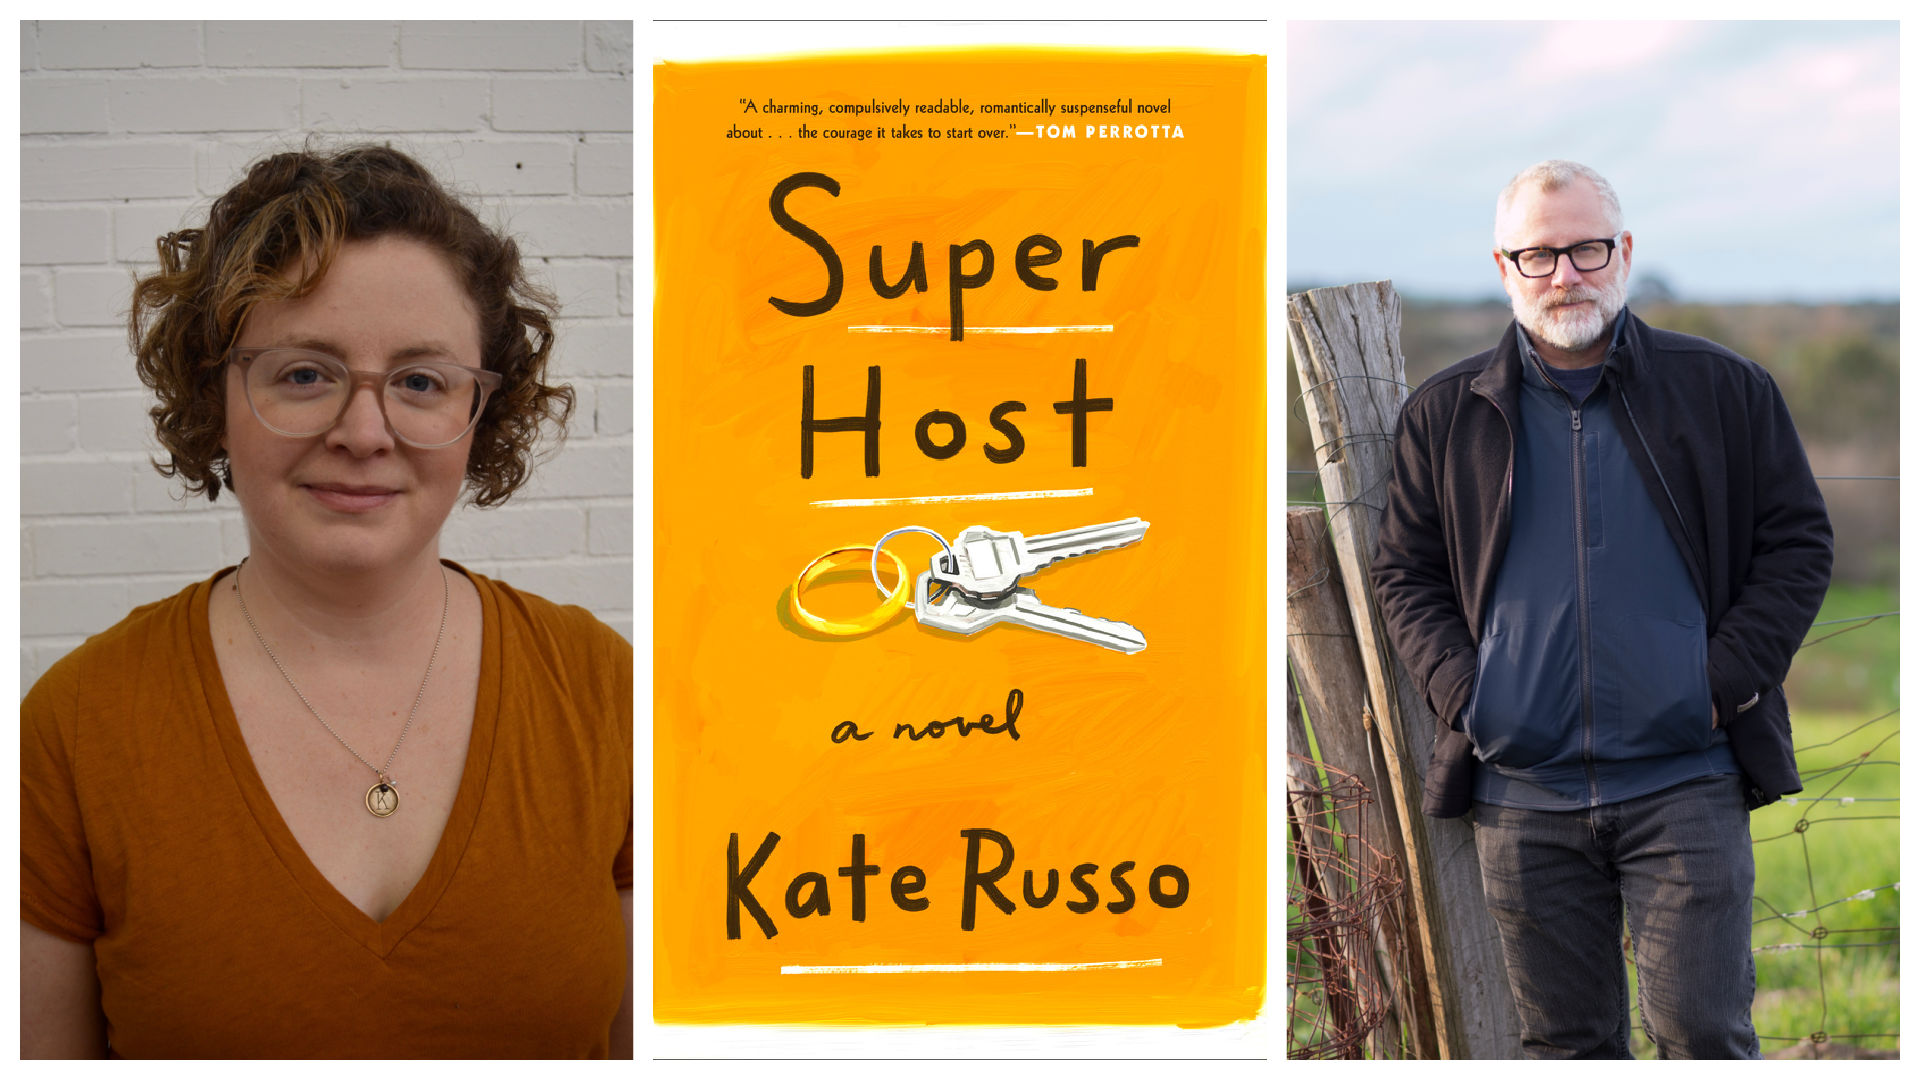 Kate Russo, author of Super Host, in discussion with Tom Perrotta